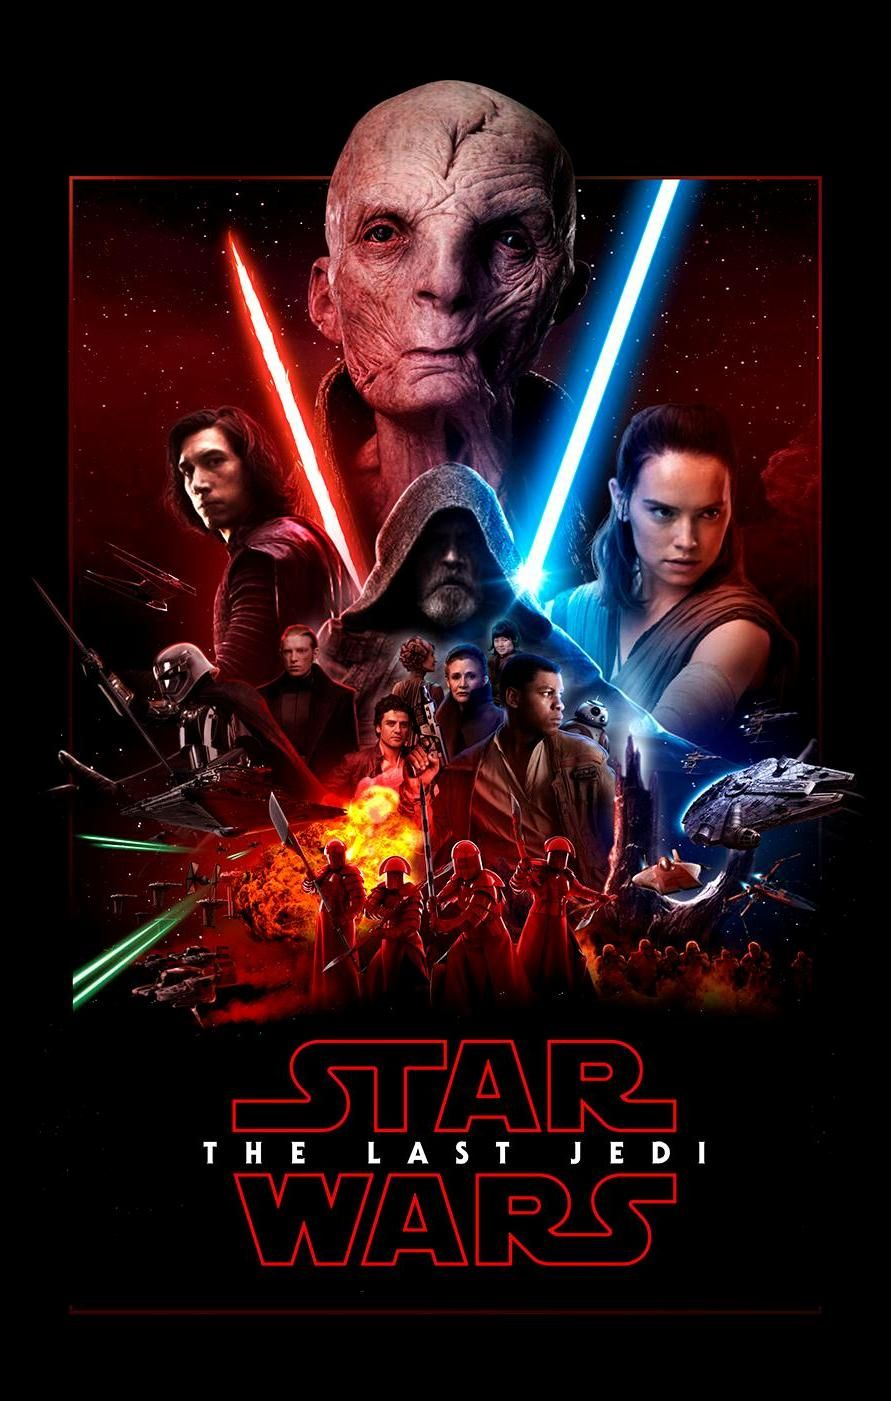 Iphone Wallpaper Star Wars The Last Jedi Best Iphone Wallpaper